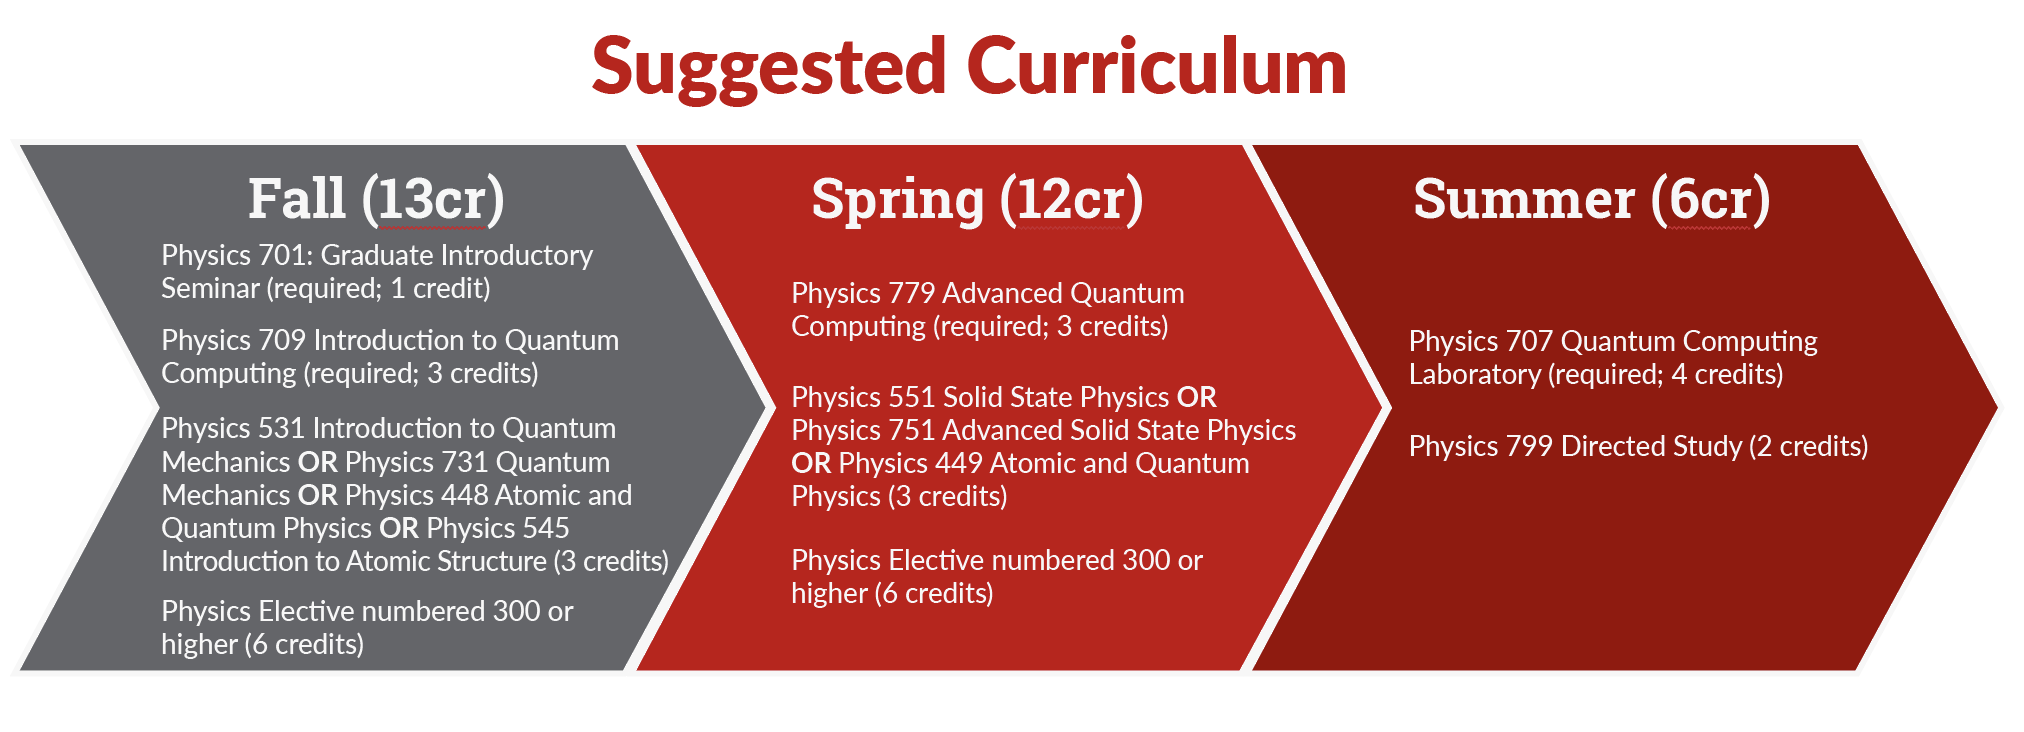 SUGGESTED CURRICULUM Fall Semester: Physics 701 (required, 1 credit) Physics 709 Introduction to Quantum Computing (required, 3 credits) Physics 531 Introduction to Quantum Mechanics OR Physics 731 Quantum Mechanics OR Physics 448 Atomic and Quantum Physics OR Physics 545 Introduction to Atomic Structure (3 credits); Physics Elective (numbered 300 or higher, 6 credits) Spring Semester: Physics 779 Advanced Quantum Computing (required, 3 credits) Physics 551 Solid State Physics or 751 Advanced Solid State Physics or Physics 449 Atomic and Quantum Physics (3 credits); Physics Elective (numbered 300 or higher, 6 credits) Summer Semester: Physics 707 Quantum Computing Laboratory (required, 4 credits) Physics 799 Directed Study (2 credits)